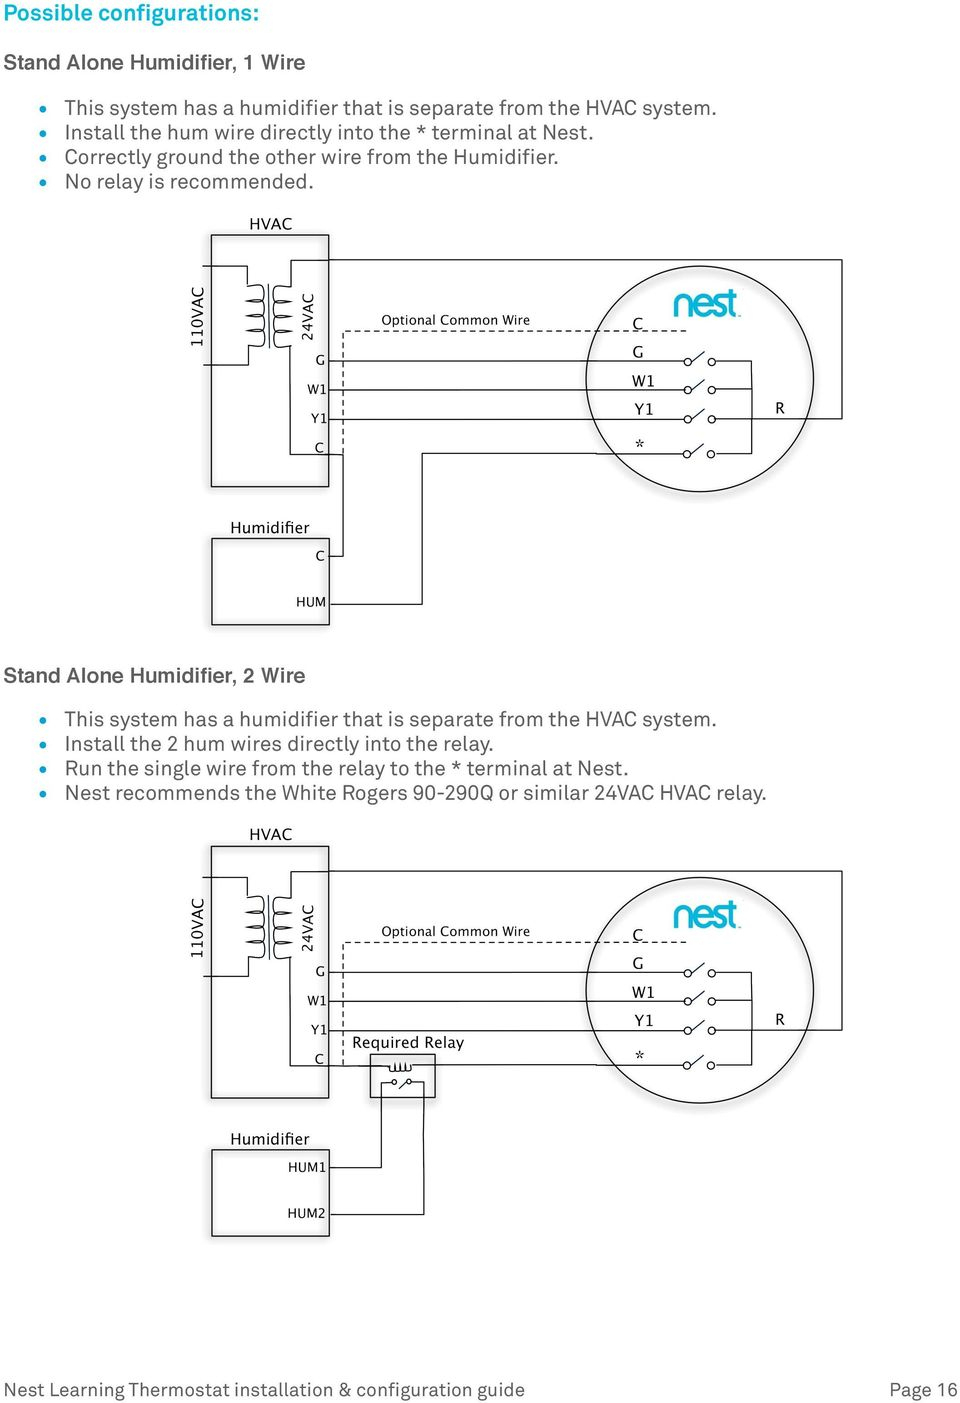 Nest Learning Thermostat Pro Installation & Configuration Guide - Pdf - Nest Wiring Diagram Single Wire